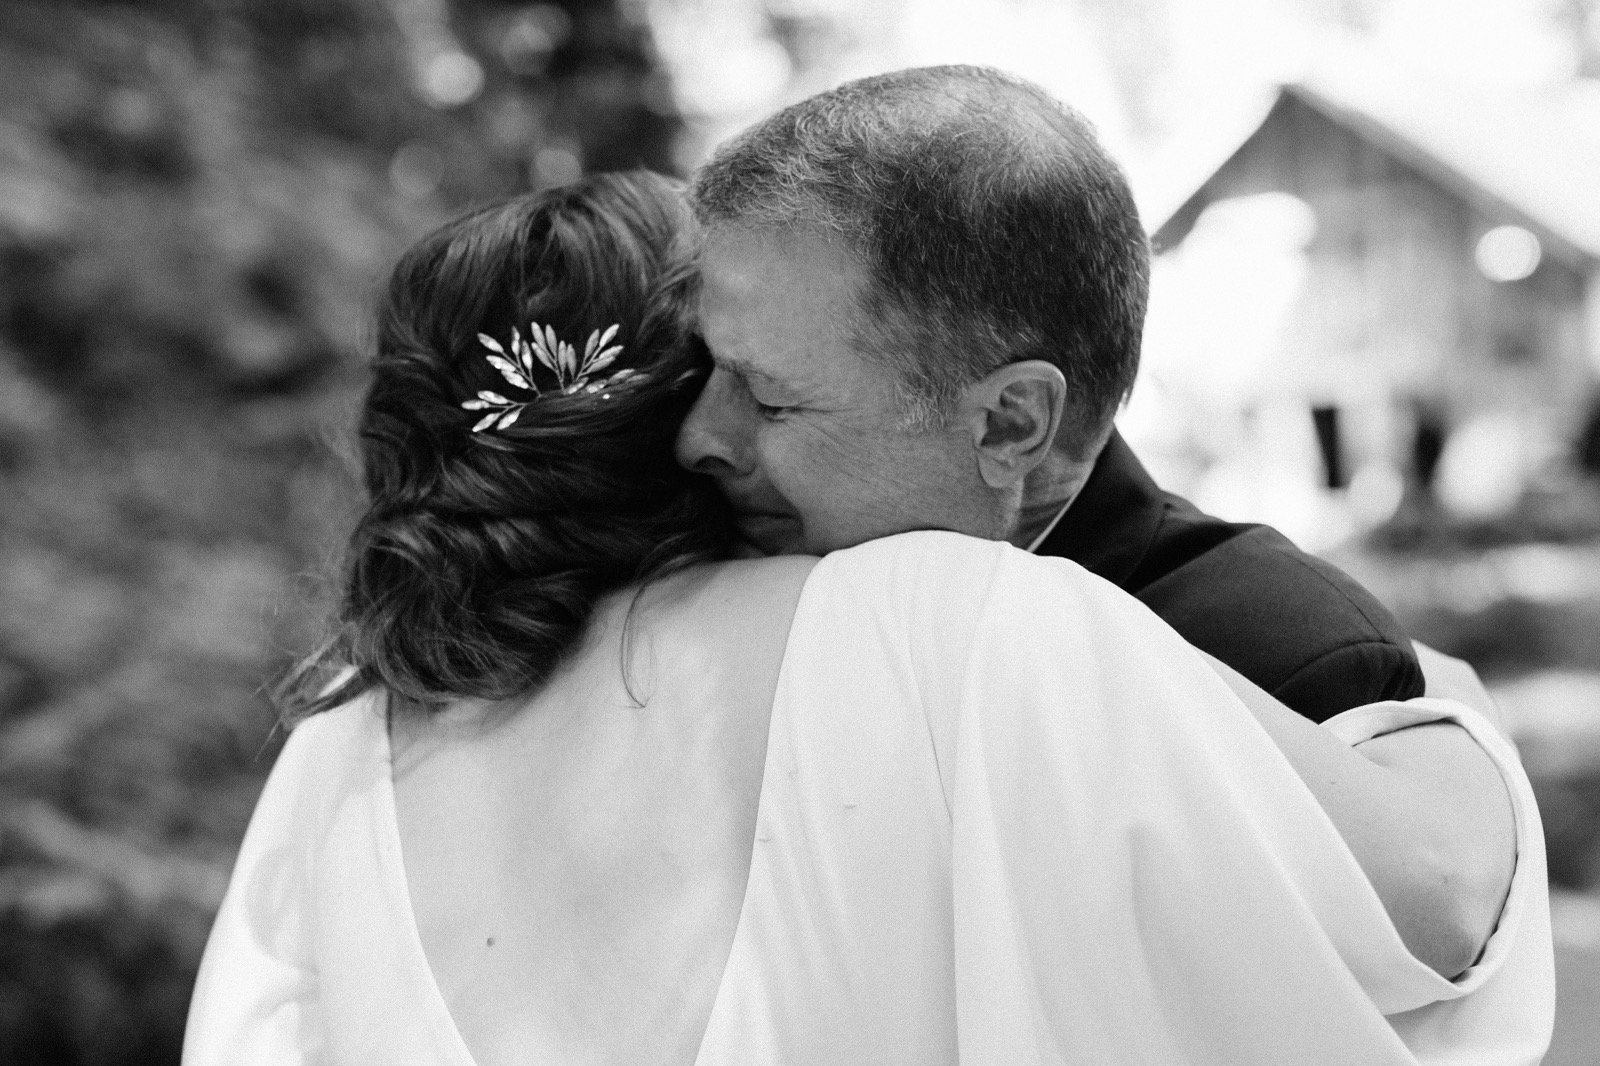 020_Emily & Jeff Wedding 0162_moments_bride_first-look_father_wedding